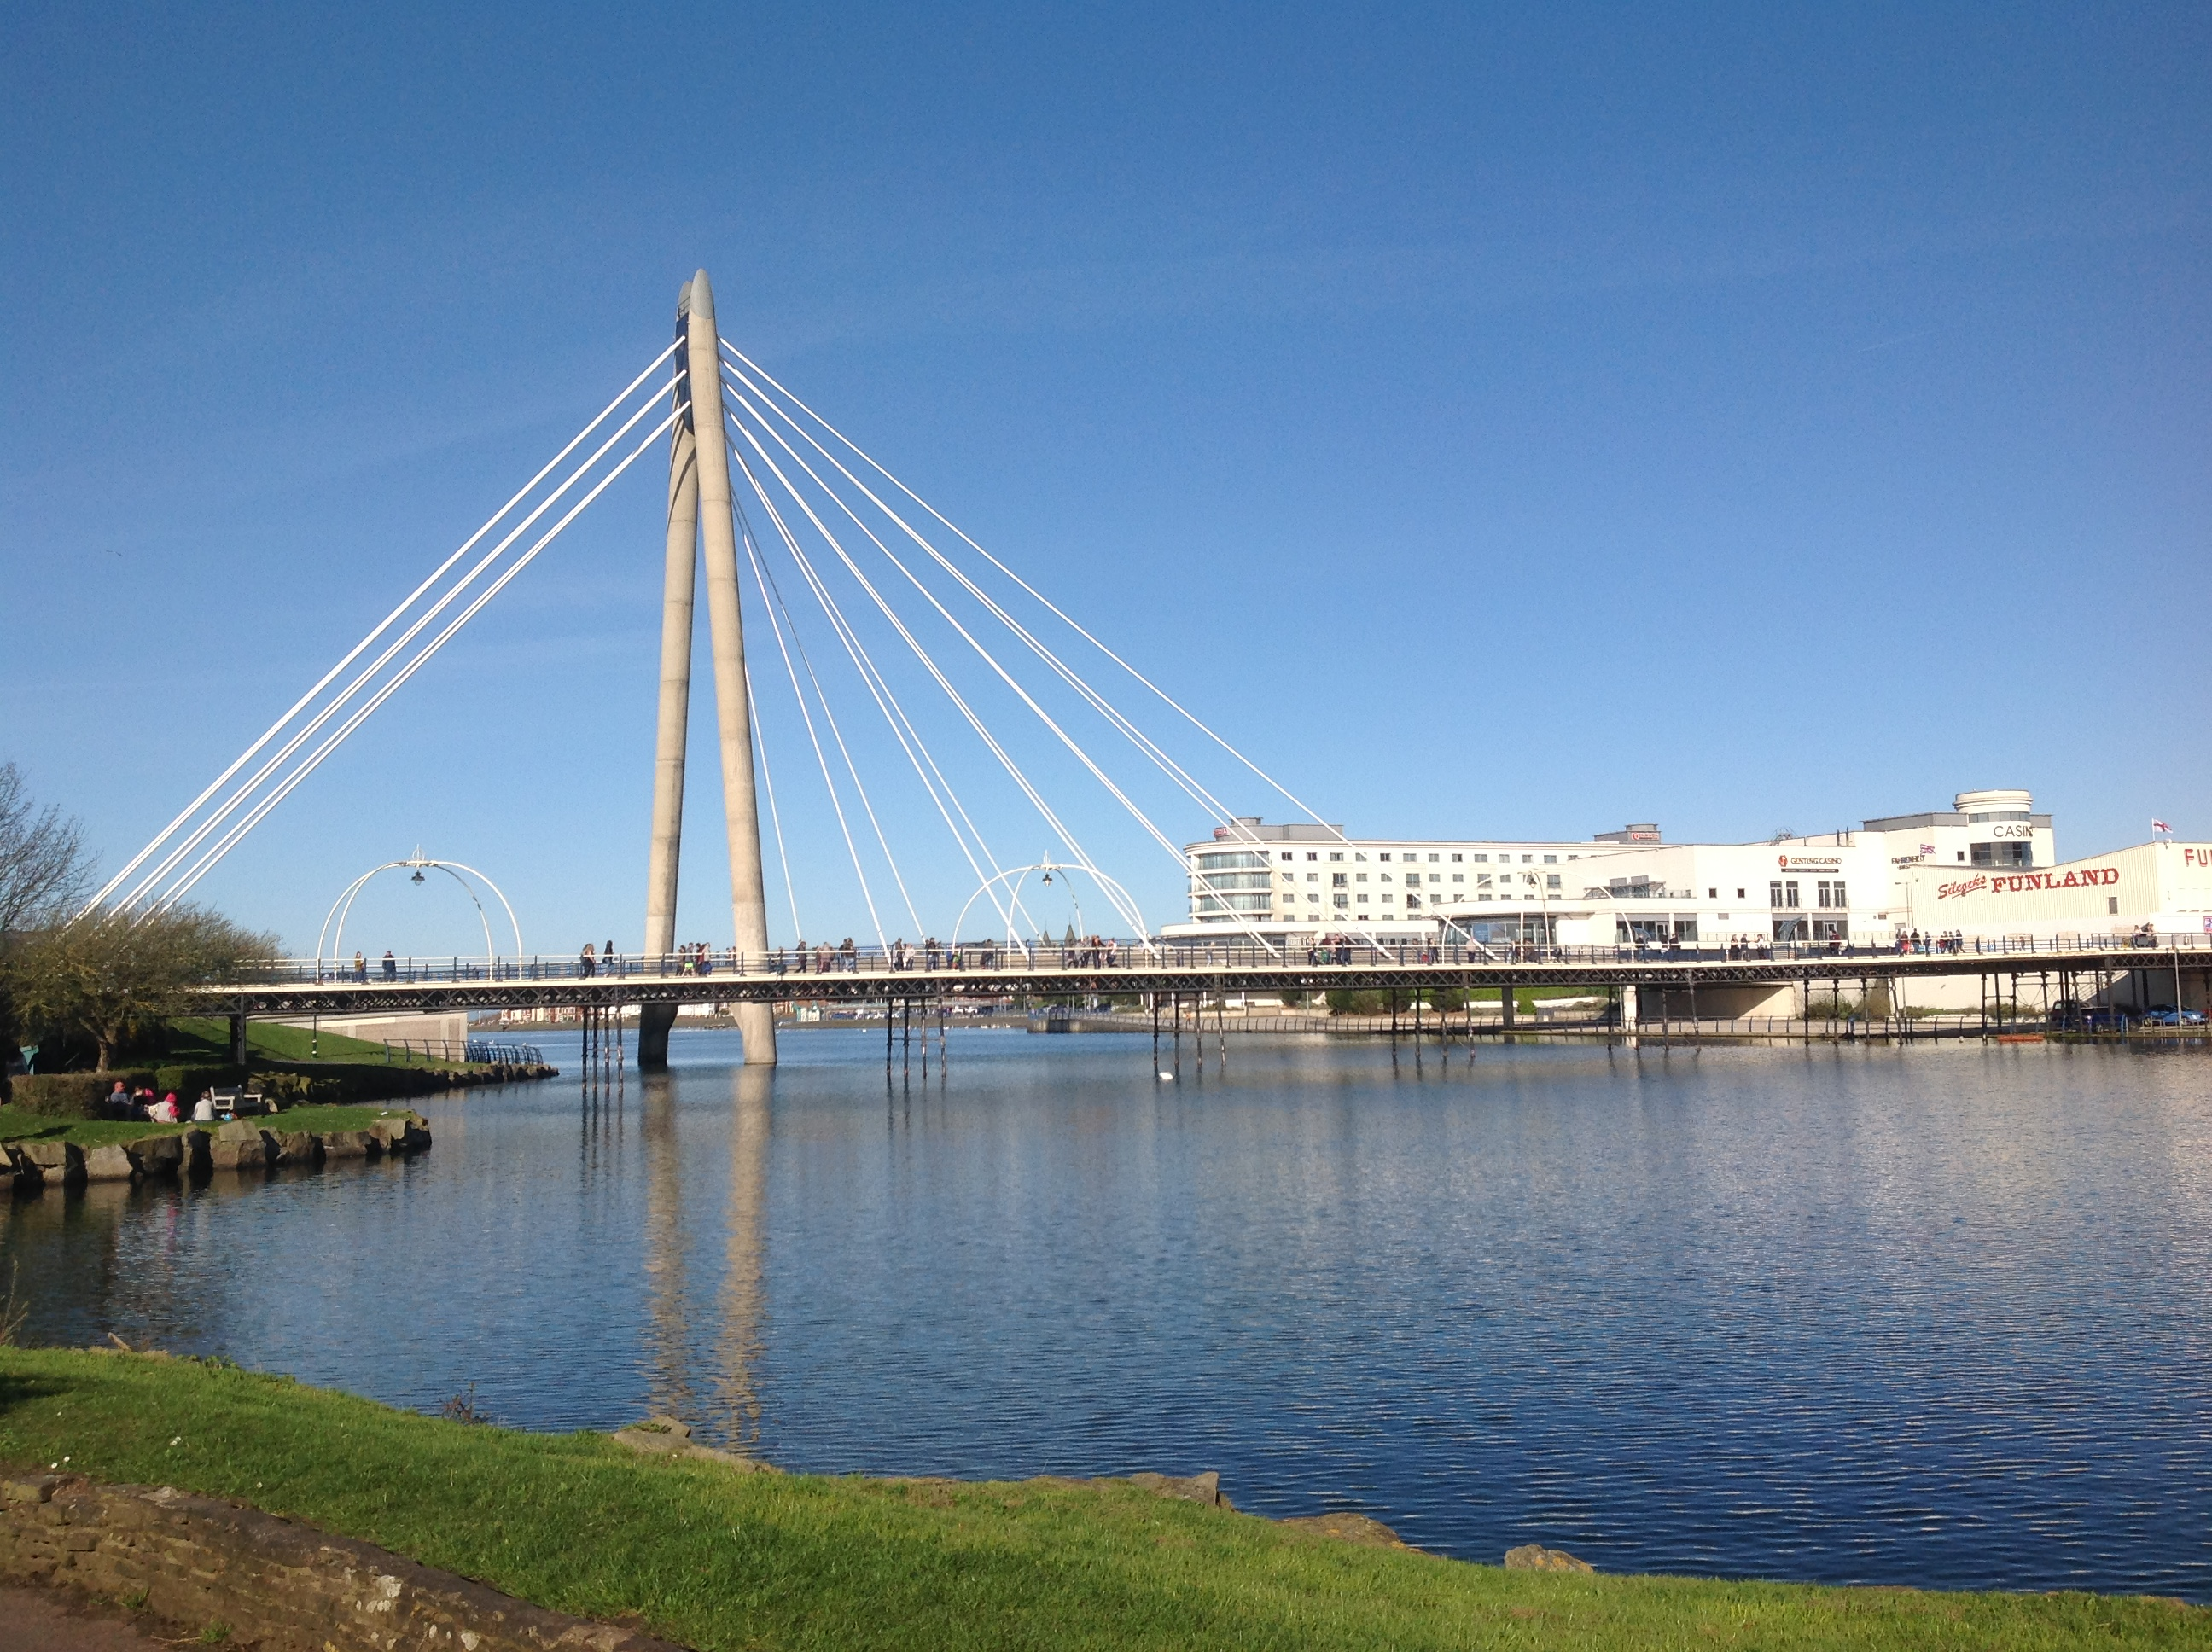 The Marine Lake in Southport, with the Marine Way Bridge, Southport Pier, Bliss Hotel and Kings Gardens.